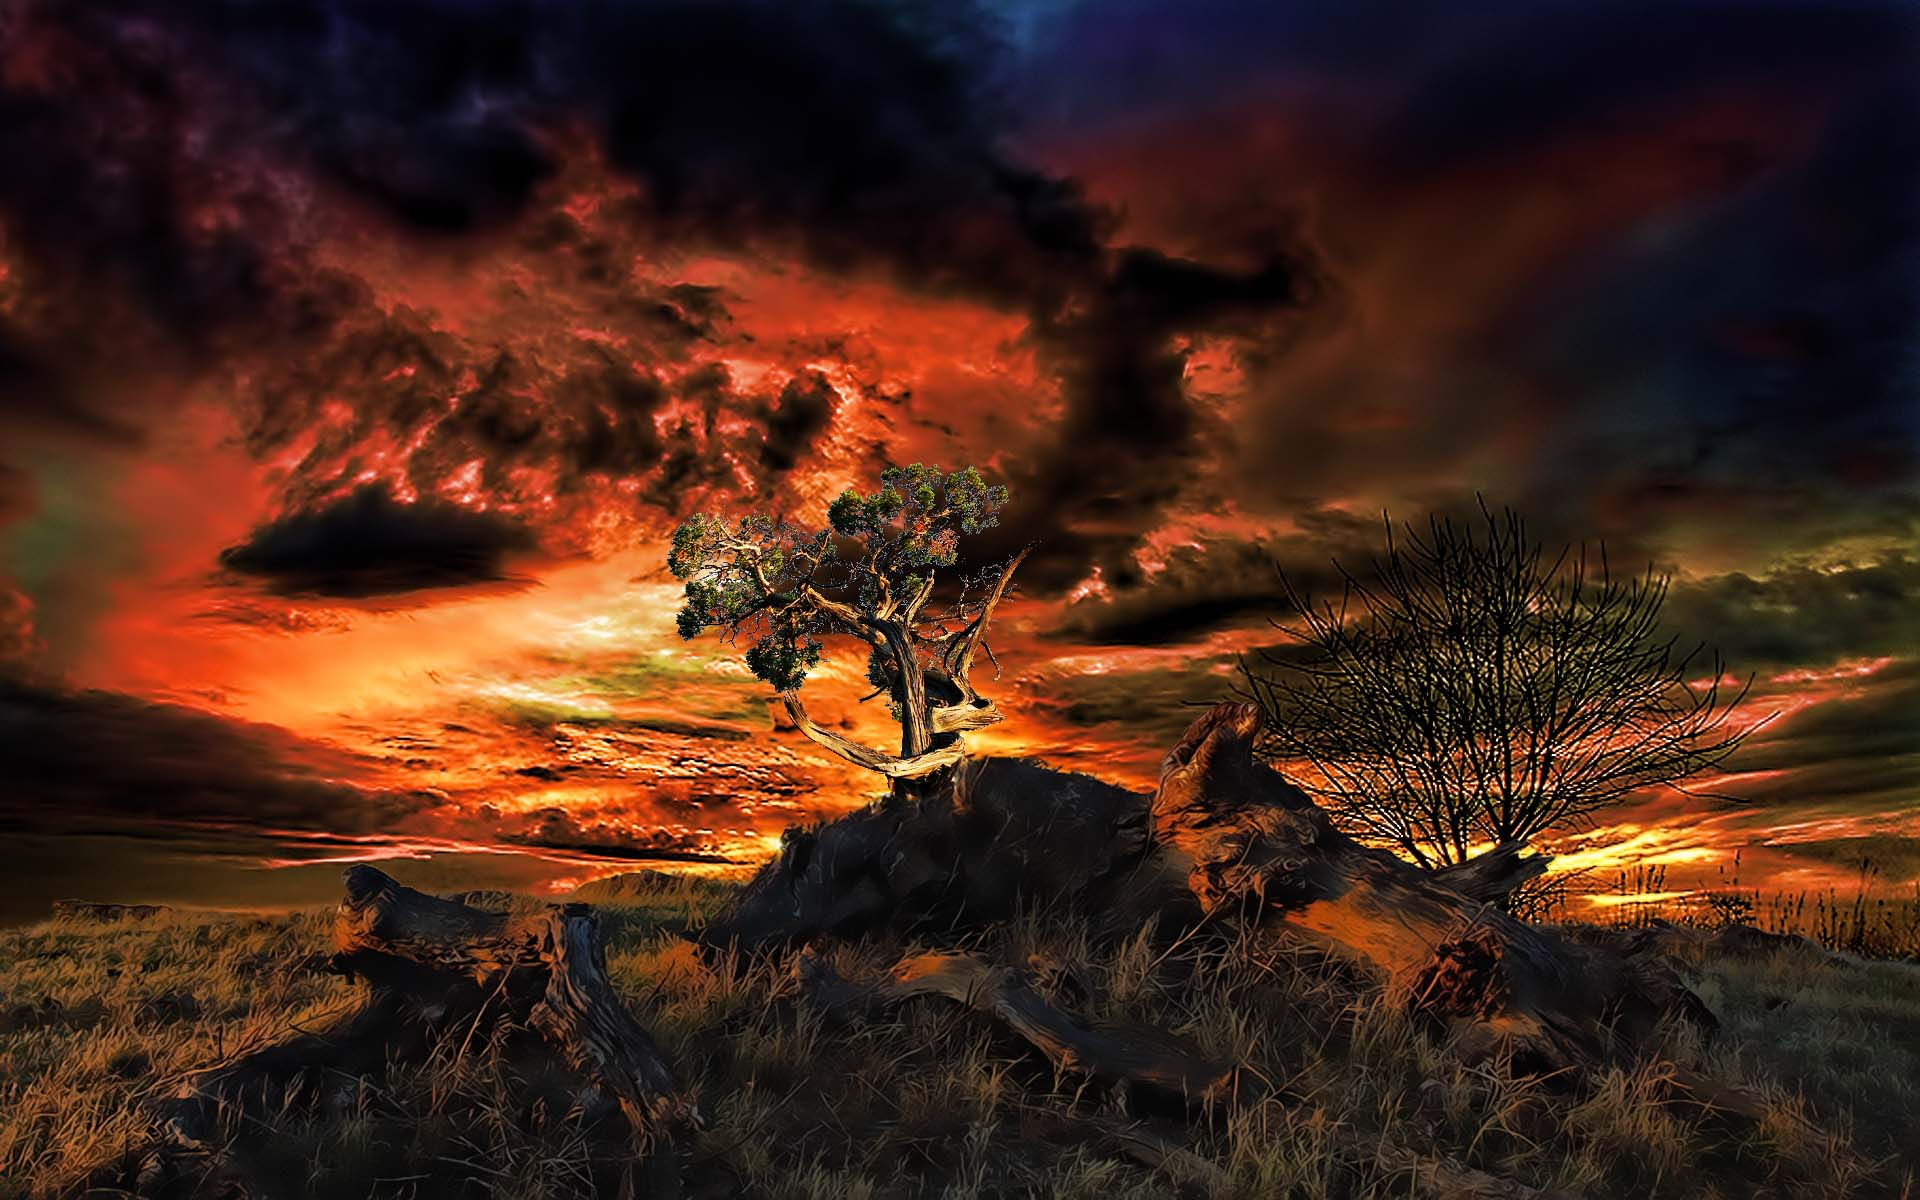 40 sunset hd wallpapers backgrounds wallpaper abyss - Wallpaper abyss categories ...